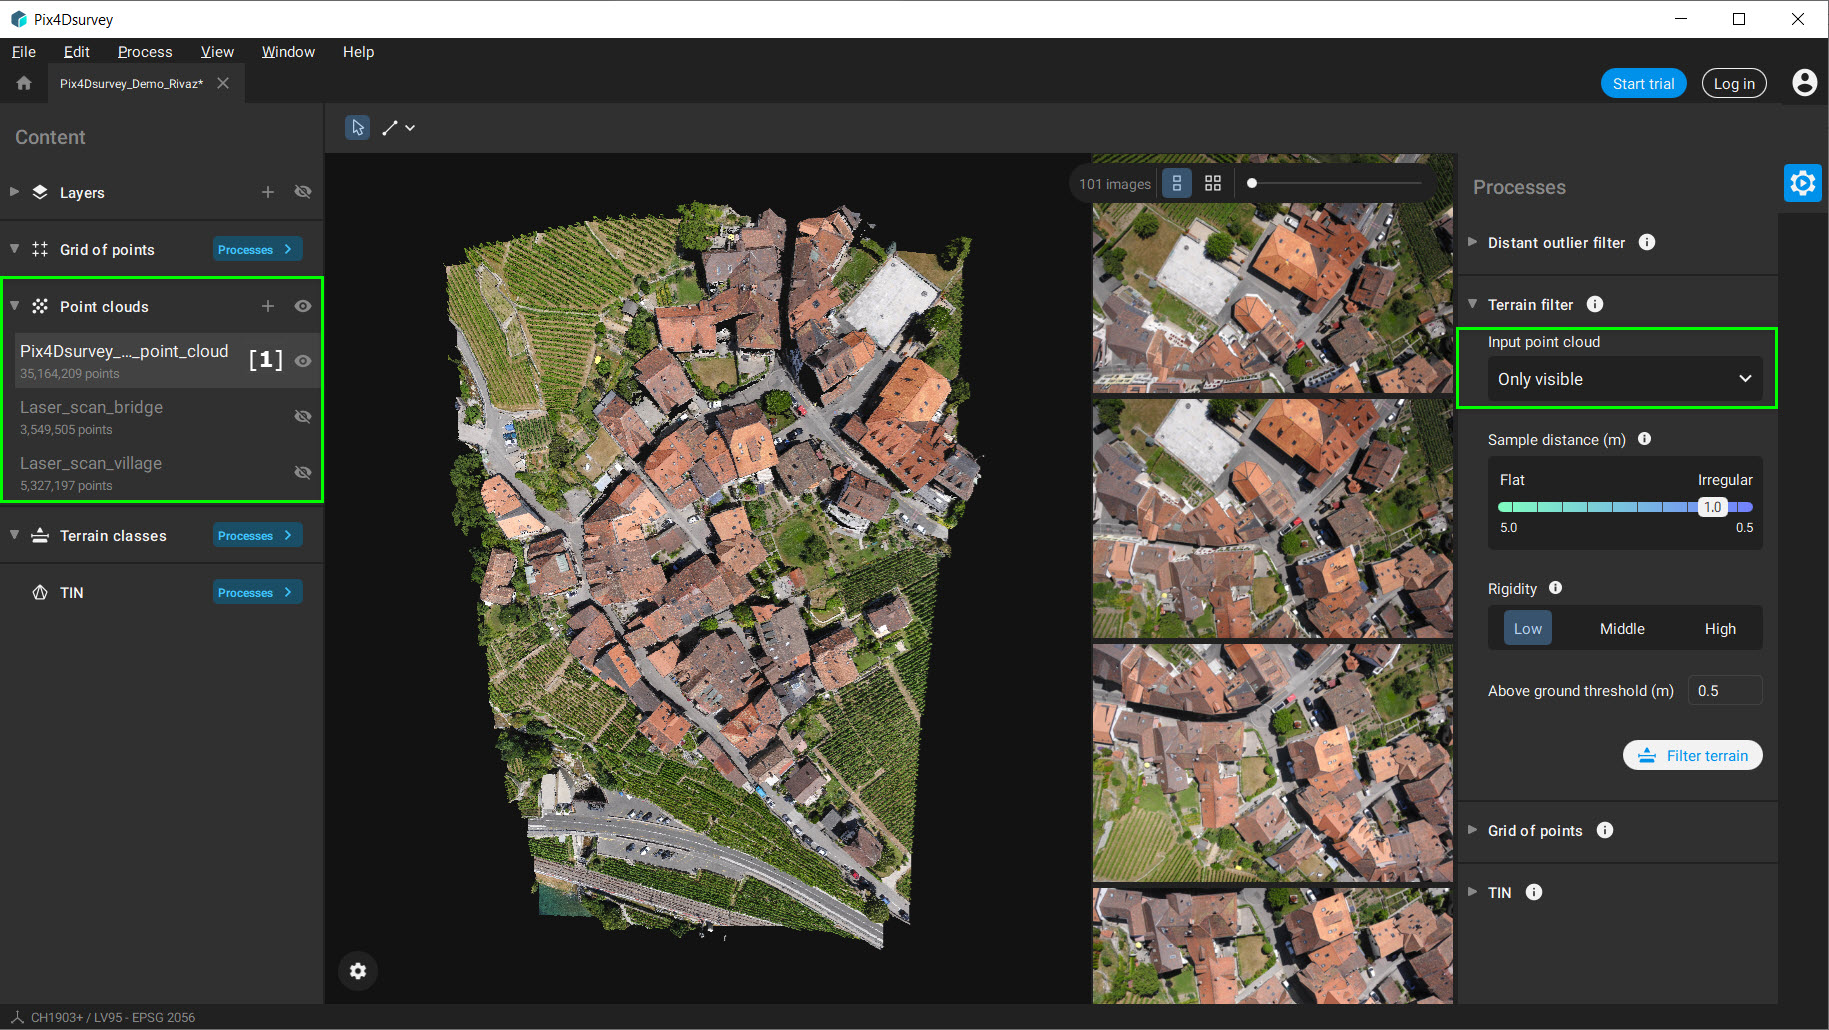 Pix4Dsurvey only visible point cloud